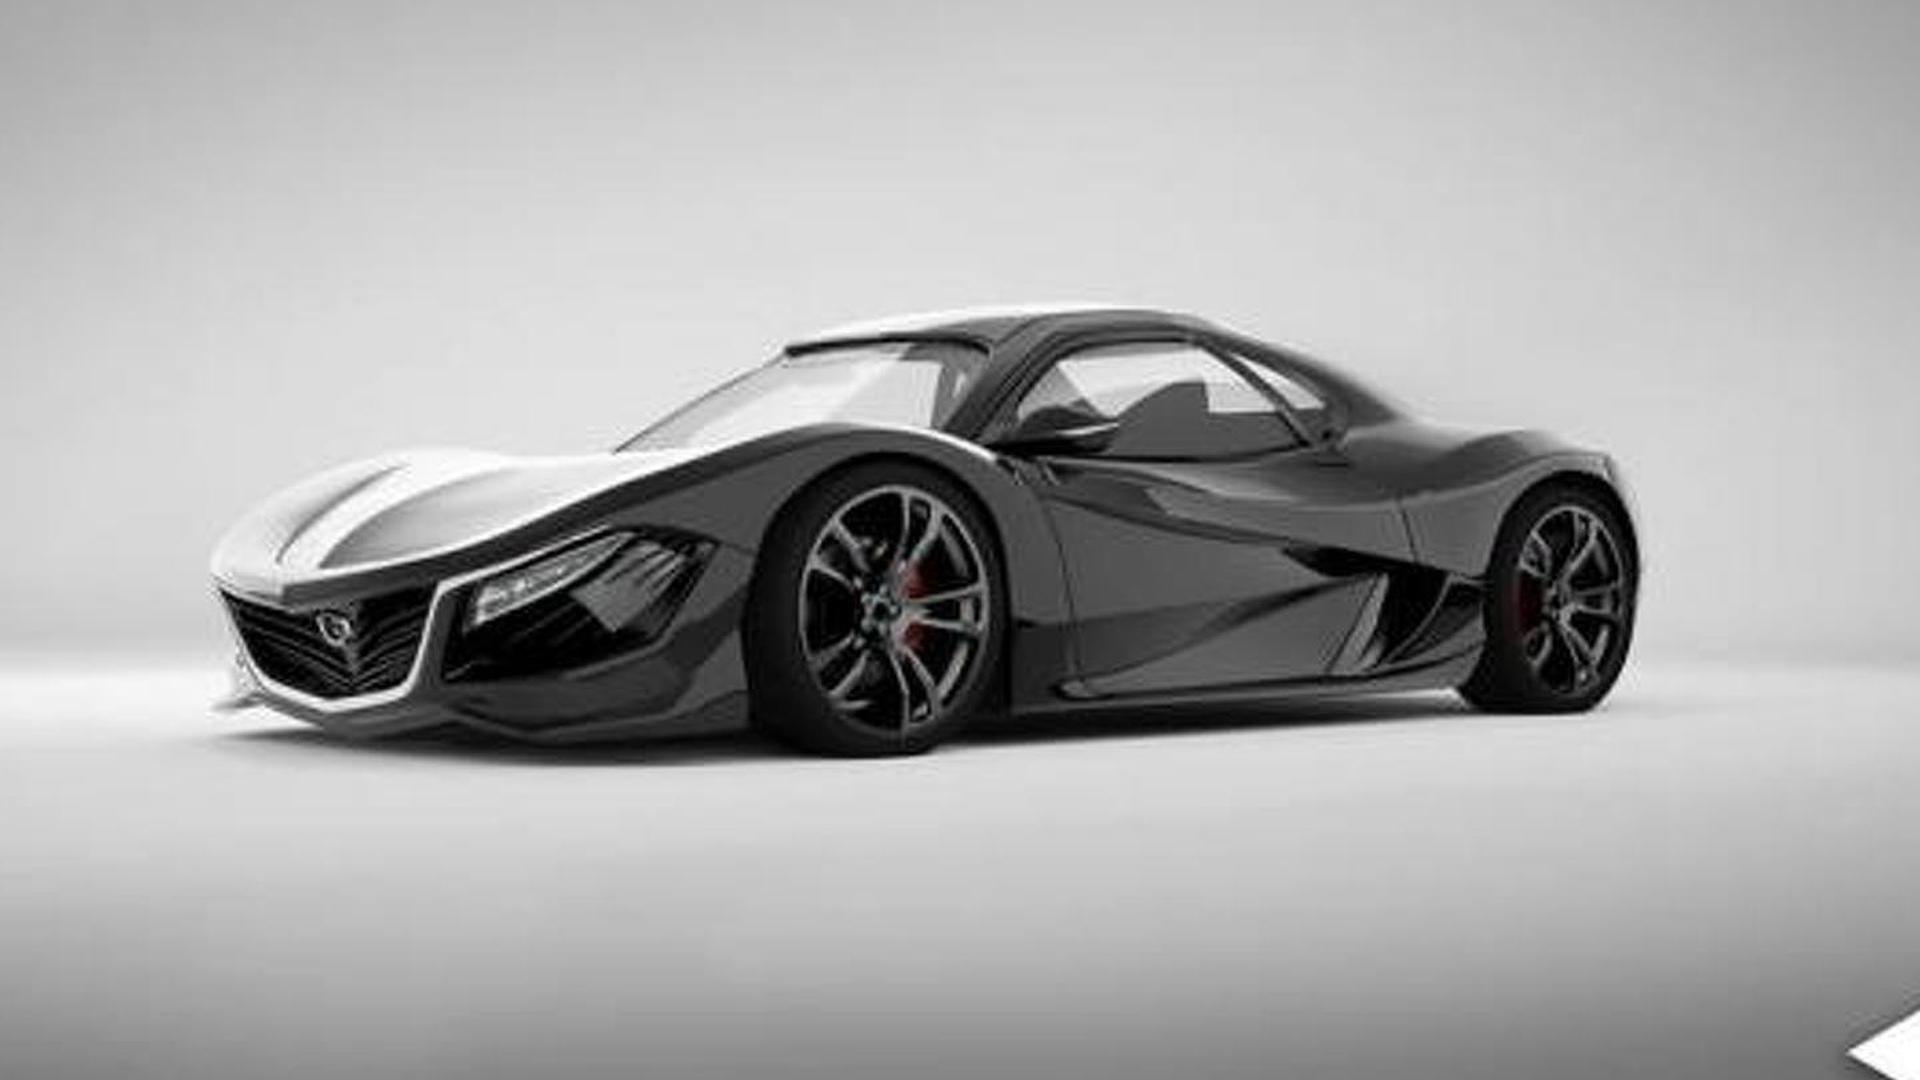 Rotary Powered 450 Bhp Mazda RX 9 Concept Allegedly Coming In 2017,  Production Due In 2020